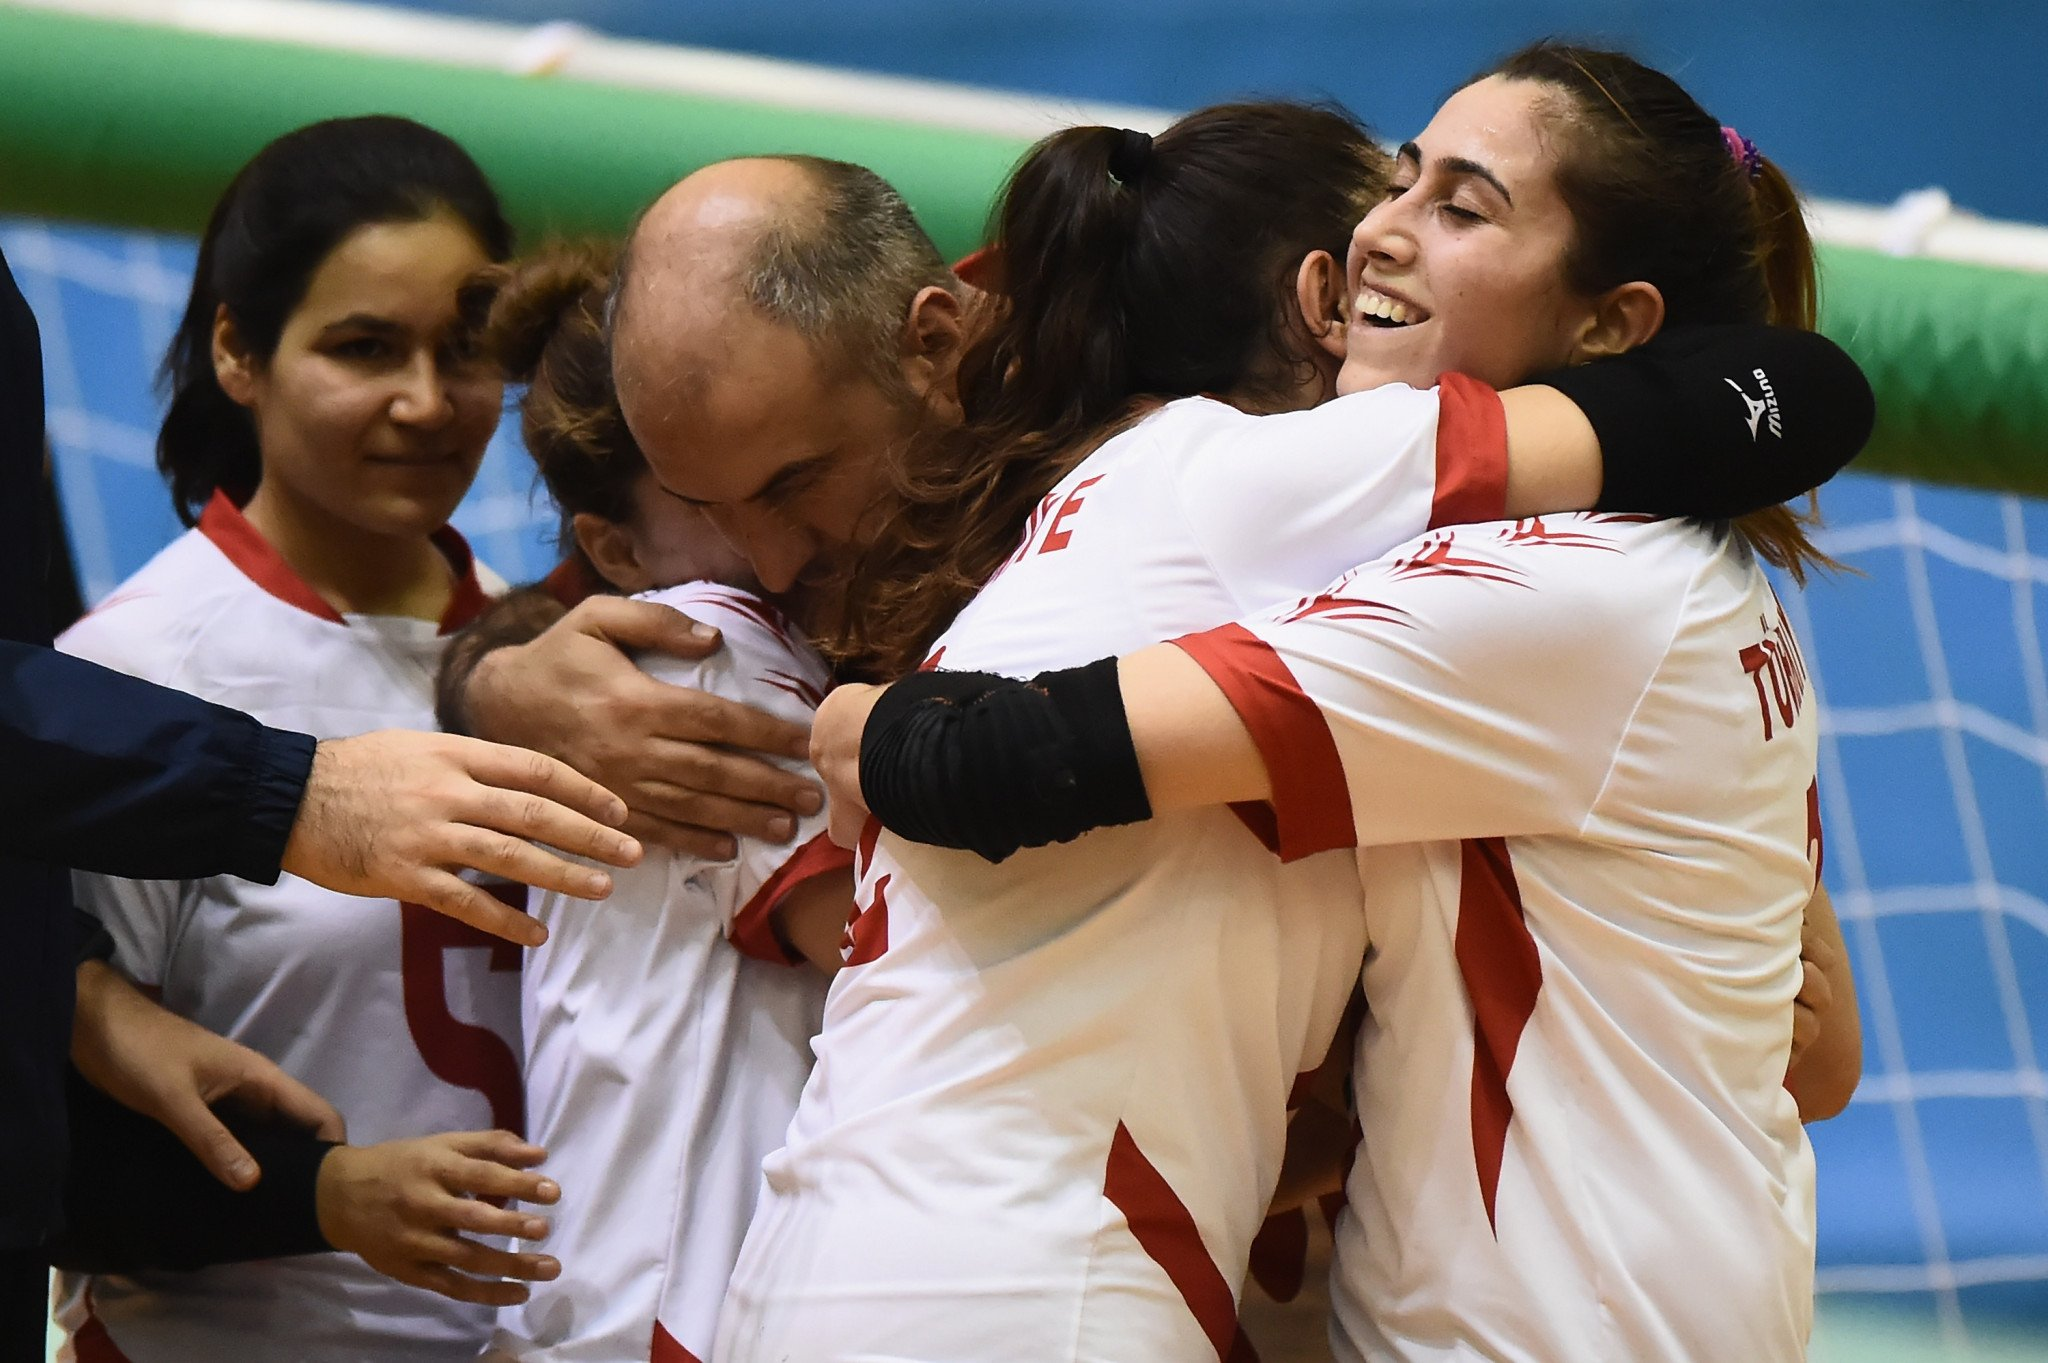 Turkey will hope to defend their women's title at Tokyo 2020 ©Getty Images